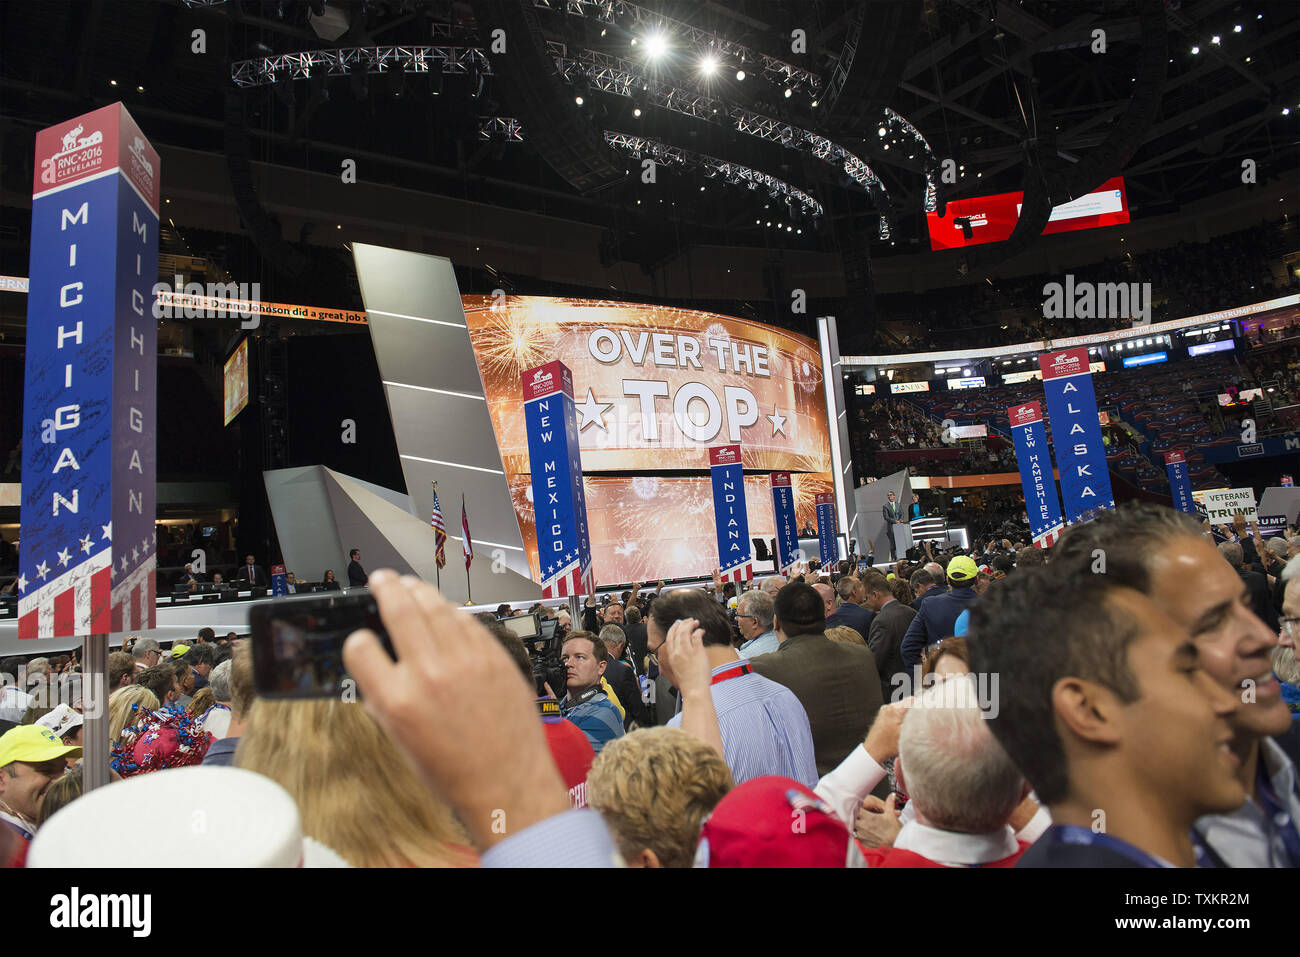 The main stage monitor flashes the news, Donald Trump wins the Republican Party nomination for president during the Republican National Convention at Quicken Loans Arena in Cleveland, Ohio on July 19, 2016.  Donald Trump will formally accept the Republican Party's nomination for President on Thursday night July 21st.  Photo by Molly Riley/UPI - Stock Image